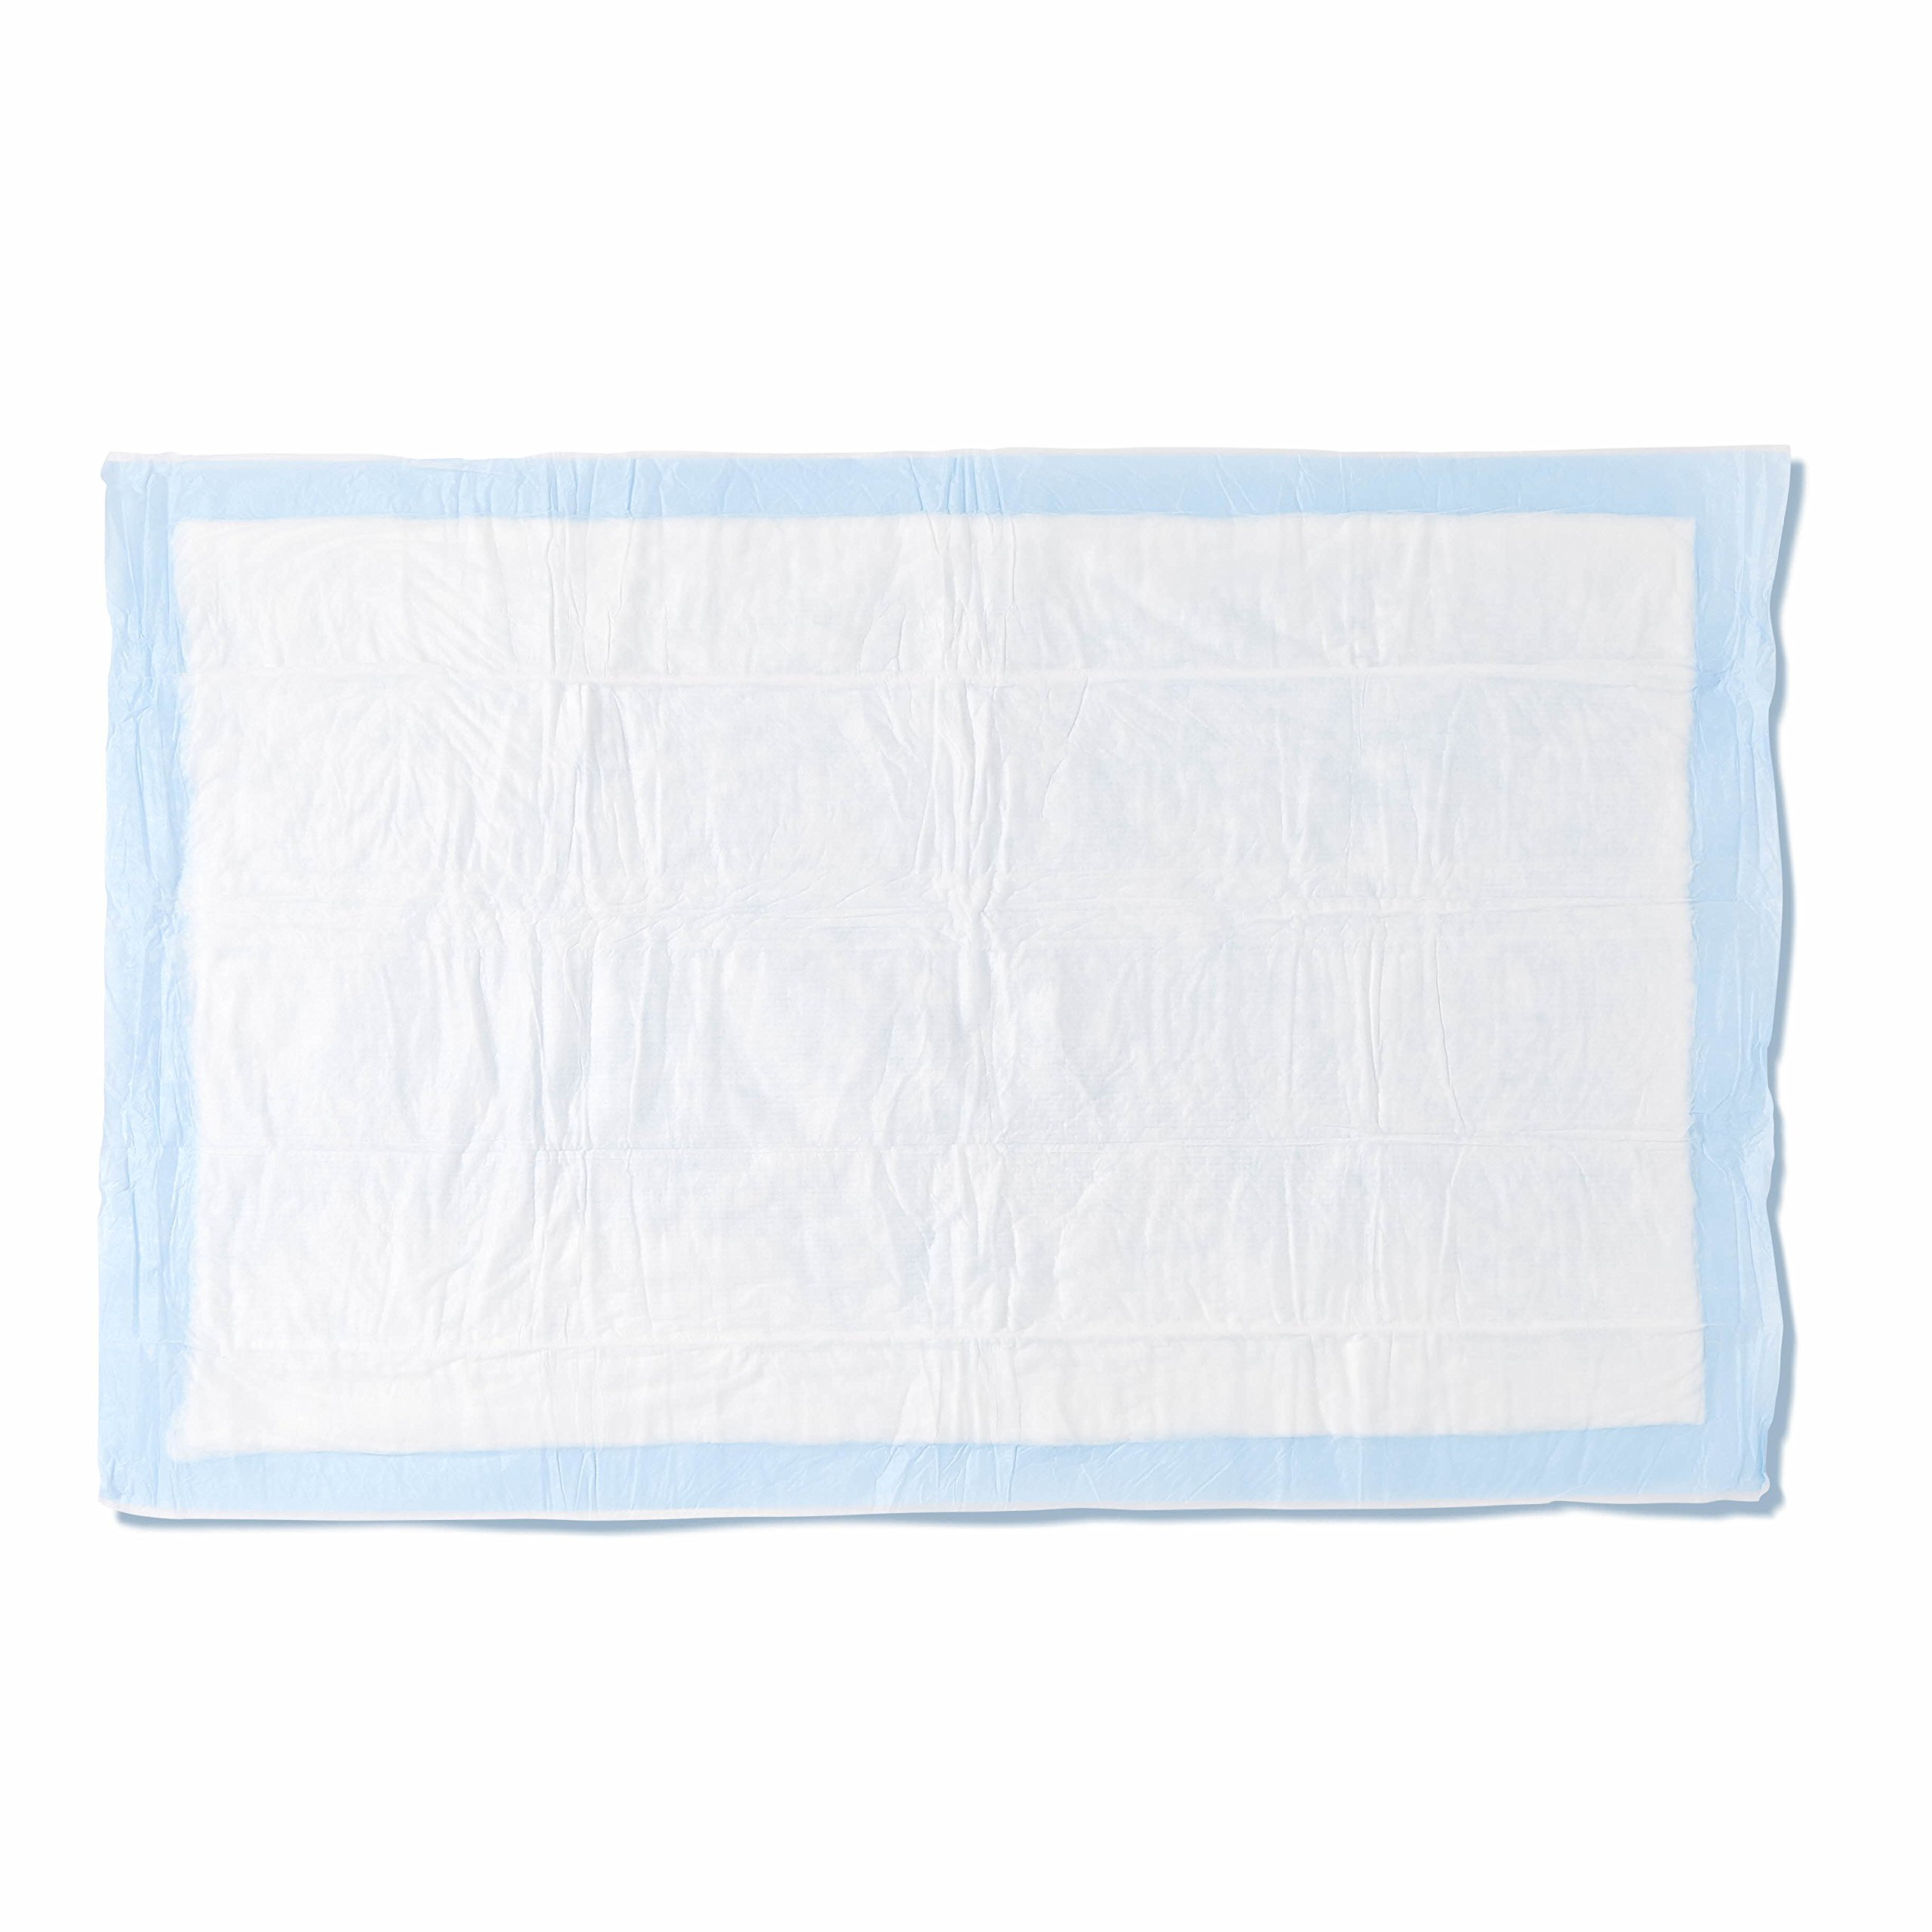 Medline Heavy Absorbency 23'' x 36'' Fluff and Polymer Disposable Underpads, 100 Per Case, Great for Protecting Beds, Furniture, Surfaces